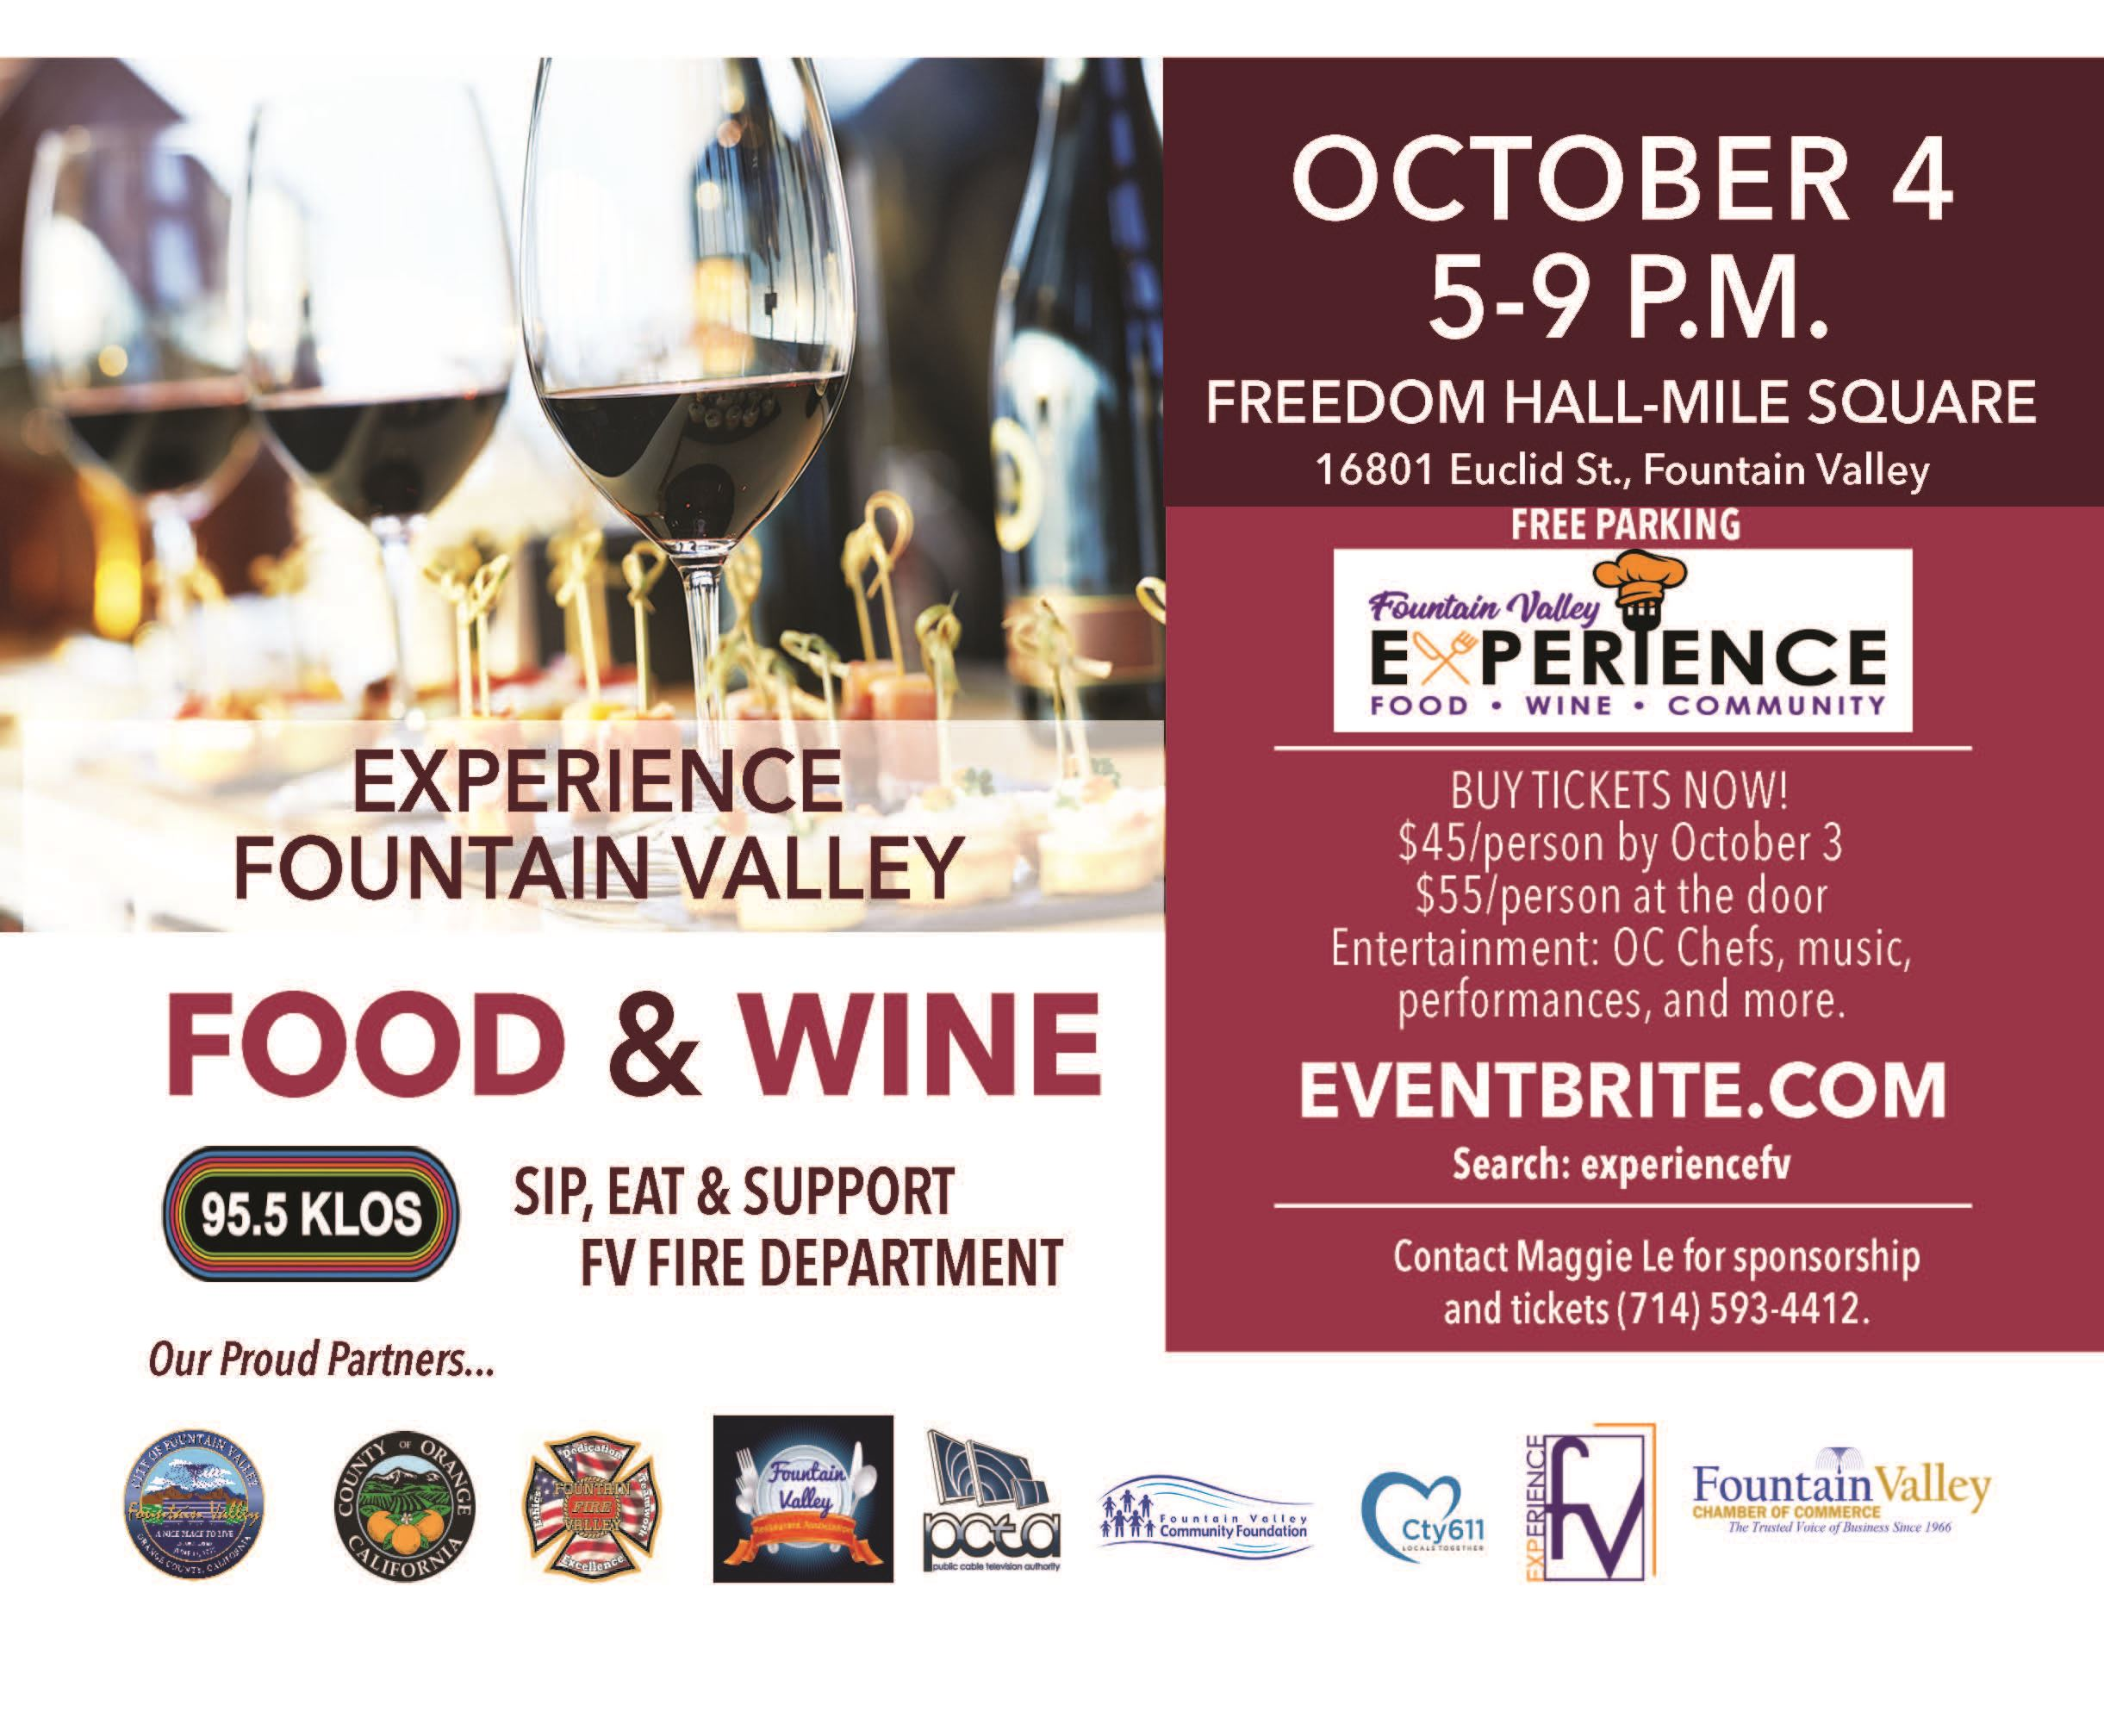 Experience FV Food & Wine Postcard Front